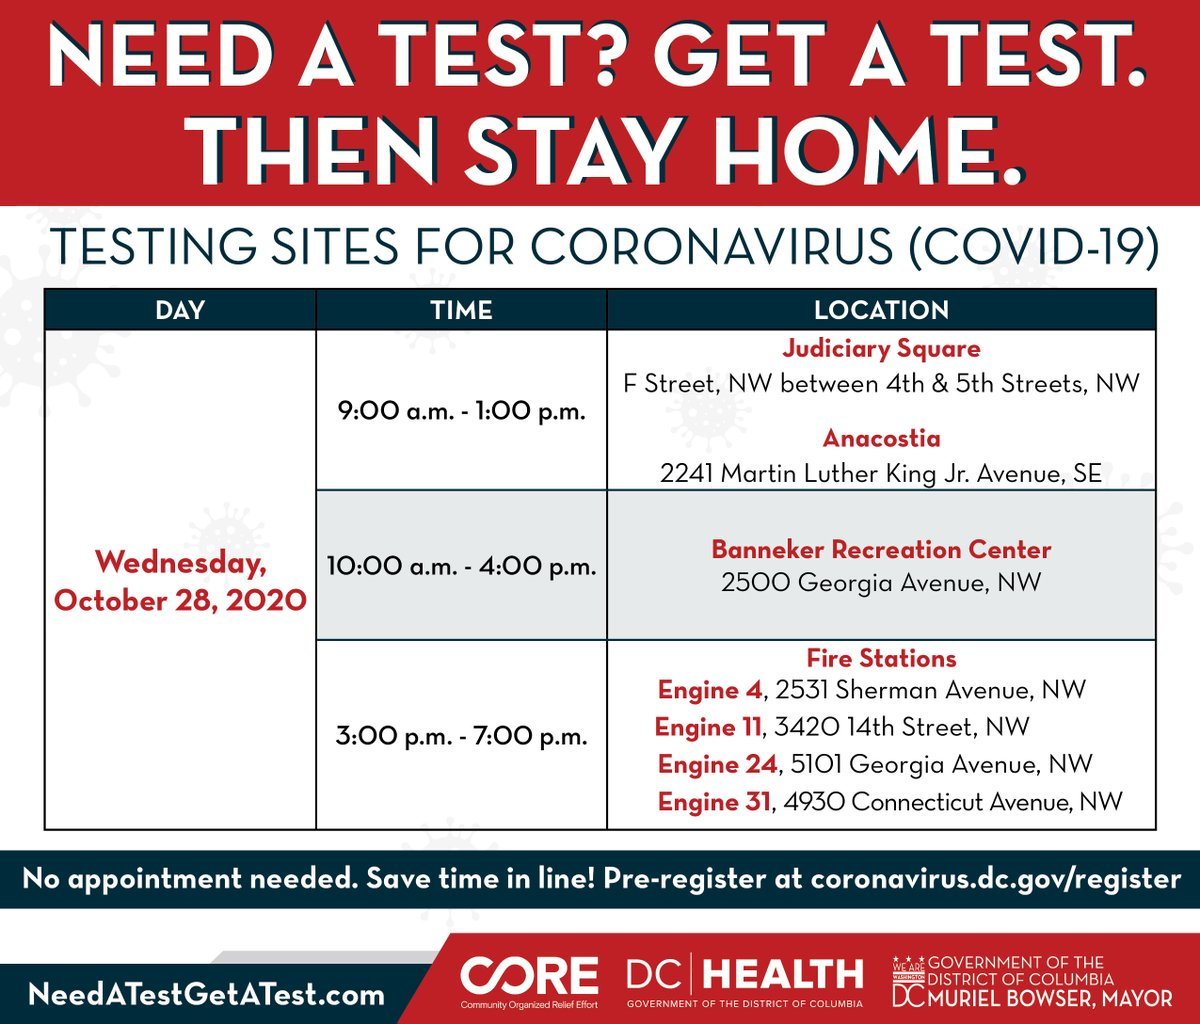 Here are today's testing sites.  -If you have a symptom, stay home and call your doctor. -If your doctor isn't available or cannot give you a COVID-19 test, visit a free public testing site near you. -Stay home while you await results. https://t.co/pqWQnnC6G0